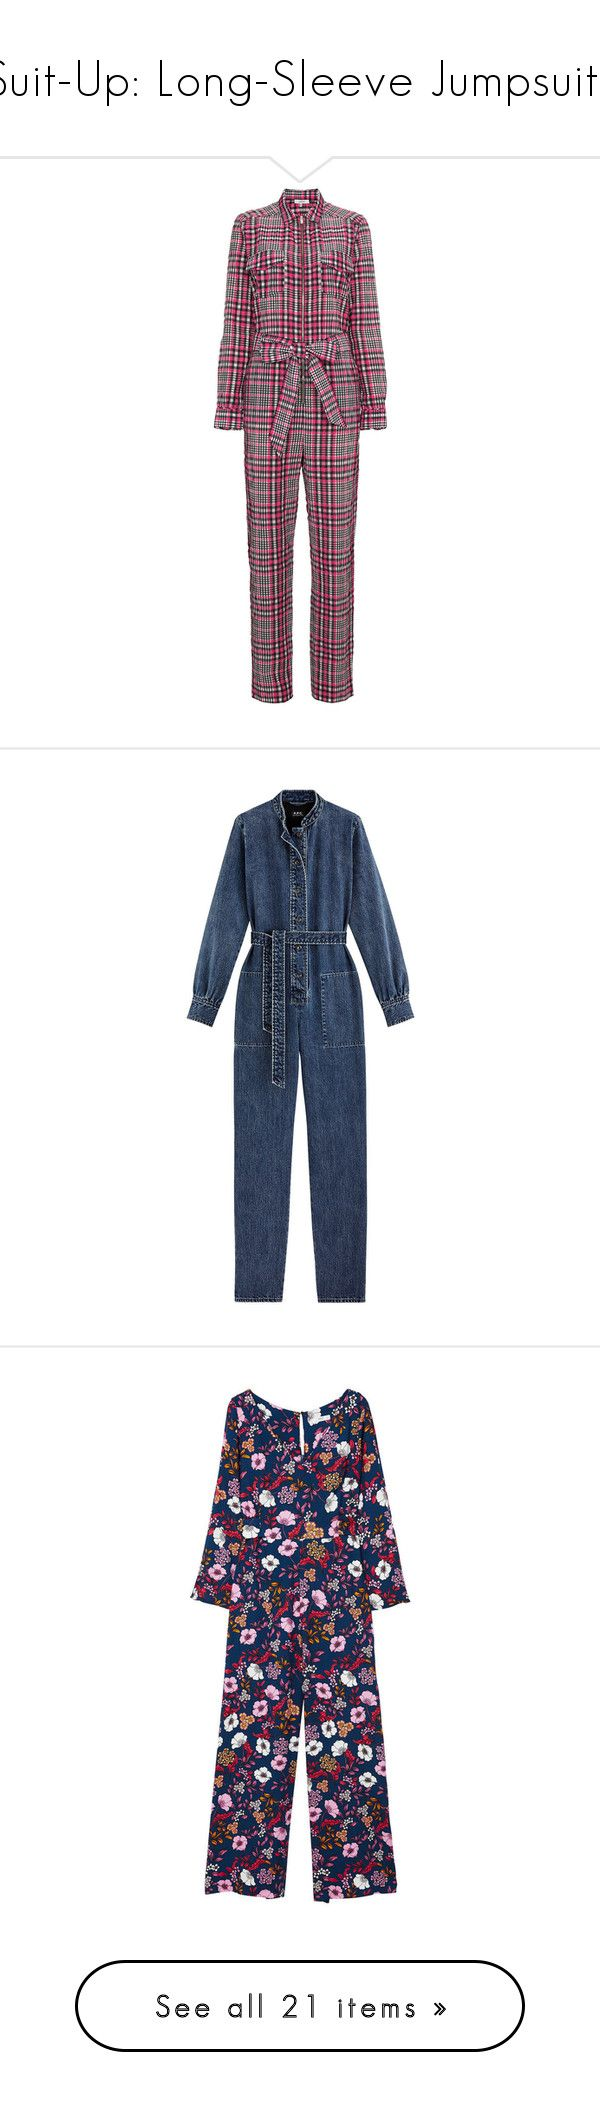 """Suit-Up: Long-Sleeve Jumpsuits"" by polyvore-editorial ❤ liked on Polyvore featuring longsleevejumpsuits, jumpsuits, multi color jumpsuit, jump suit, ganni, multi colored jumpsuit, colorful jumpsuit, dresses, denim jump suit and blue denim jumpsuit"